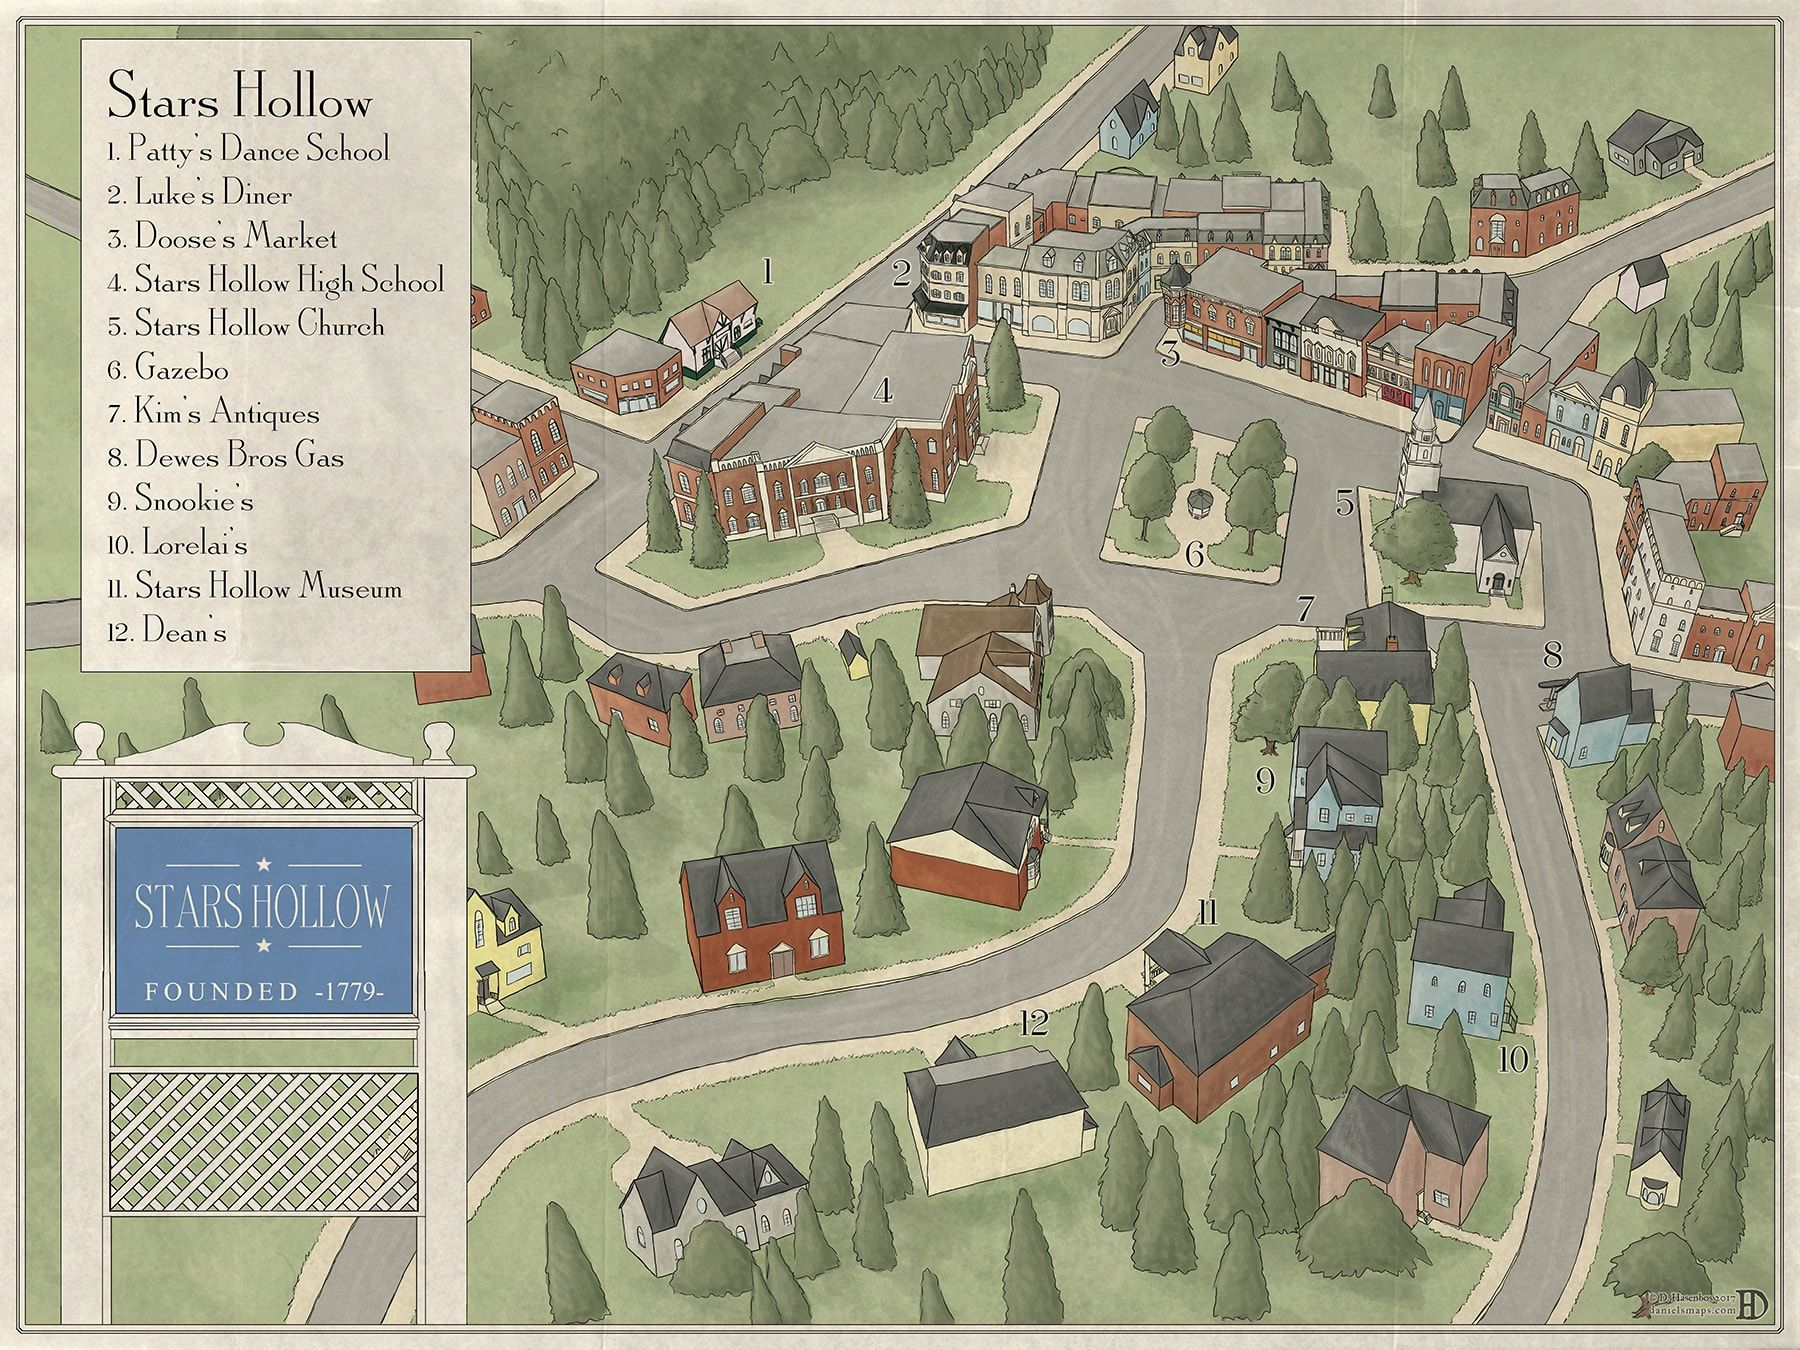 Stars Hollow Map Recently I was commissioned by a private client to make a map of